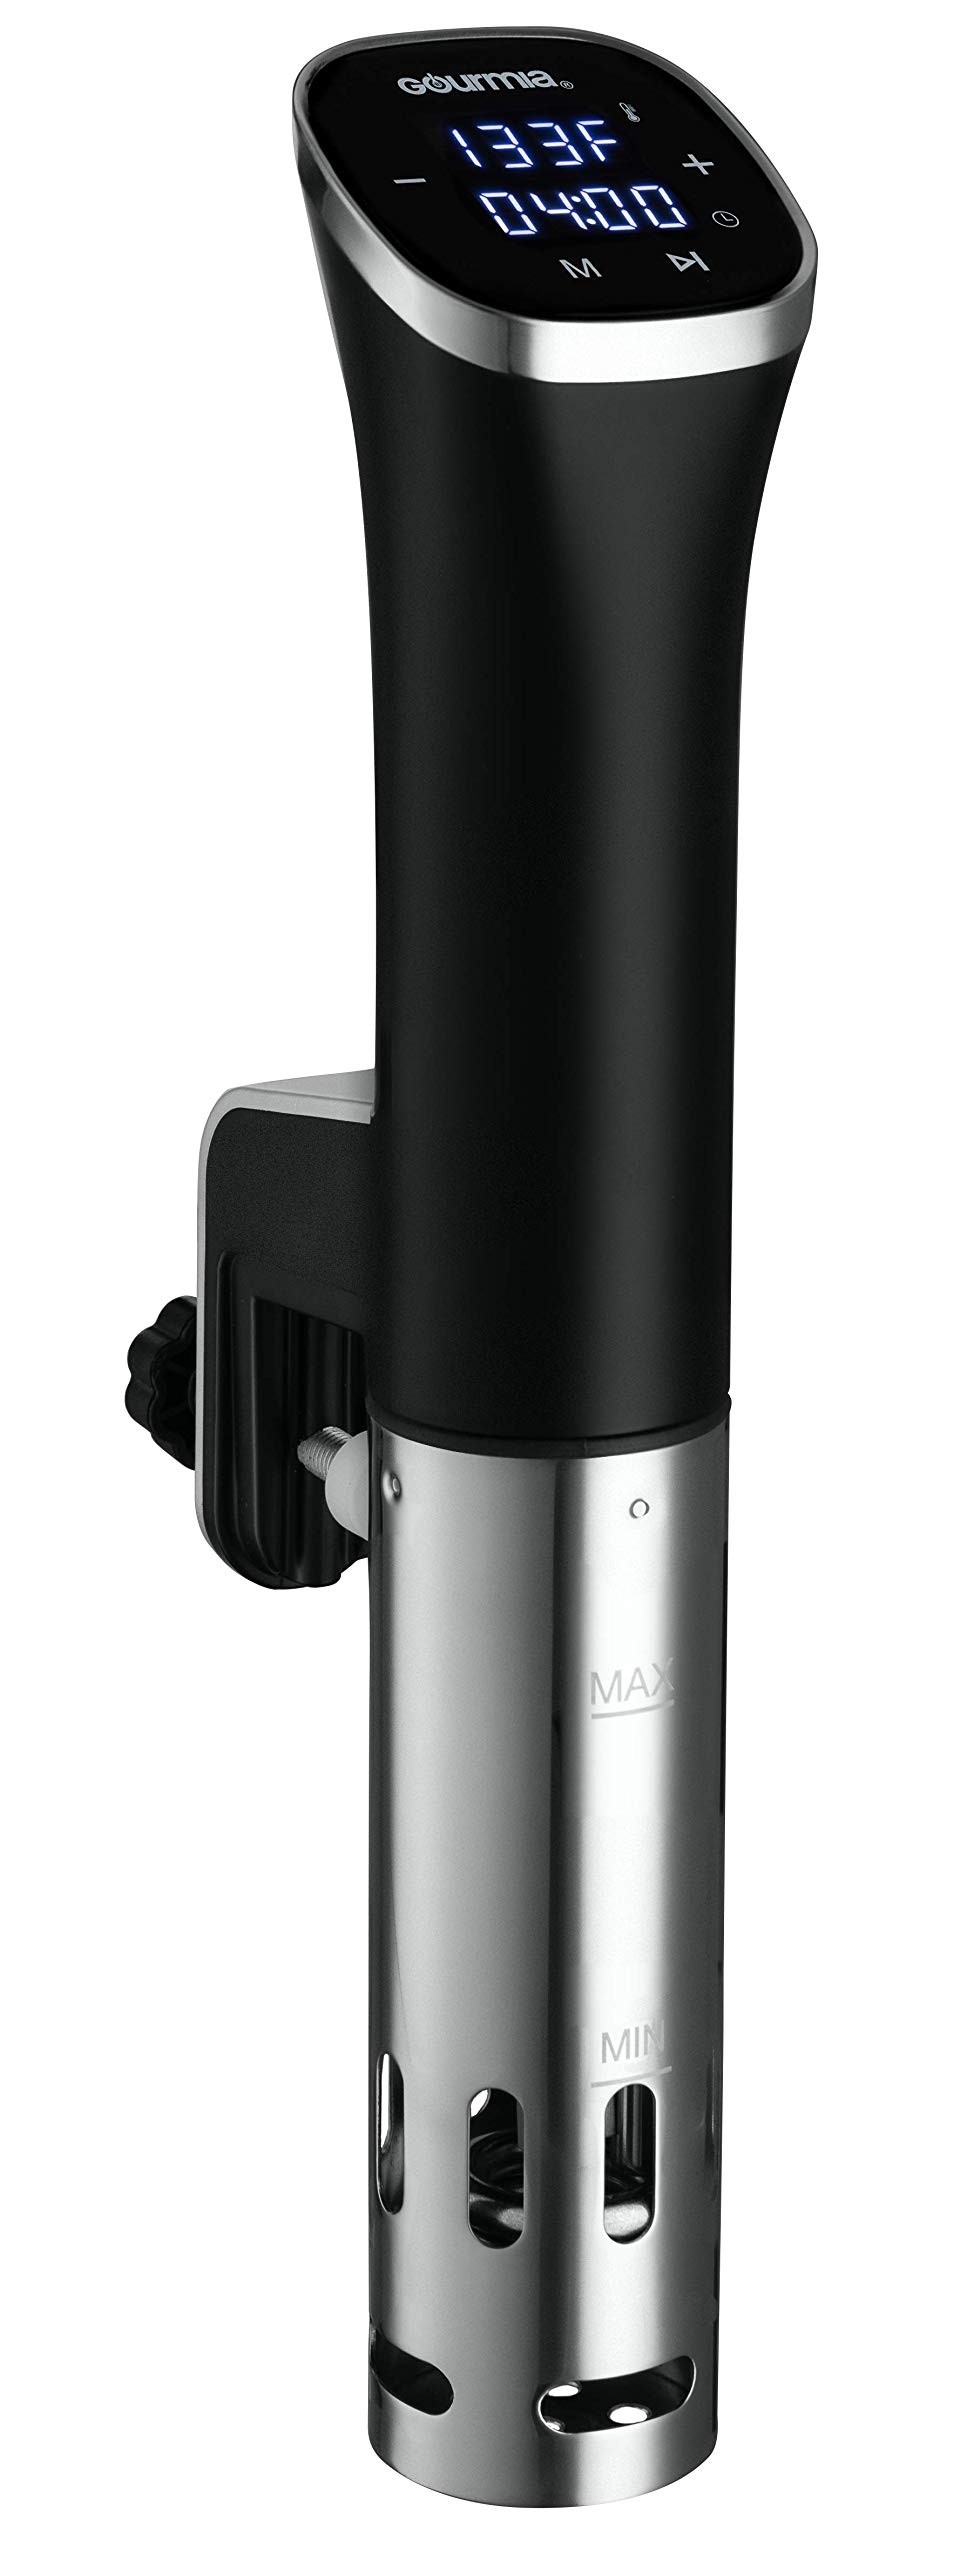 Gourmia GSV115 - Immersion Compact Sous Vide Pod with LED Display - Digital Timer - Accurate Cooking - 800 Watts - Recipe Book Included by Gourmia